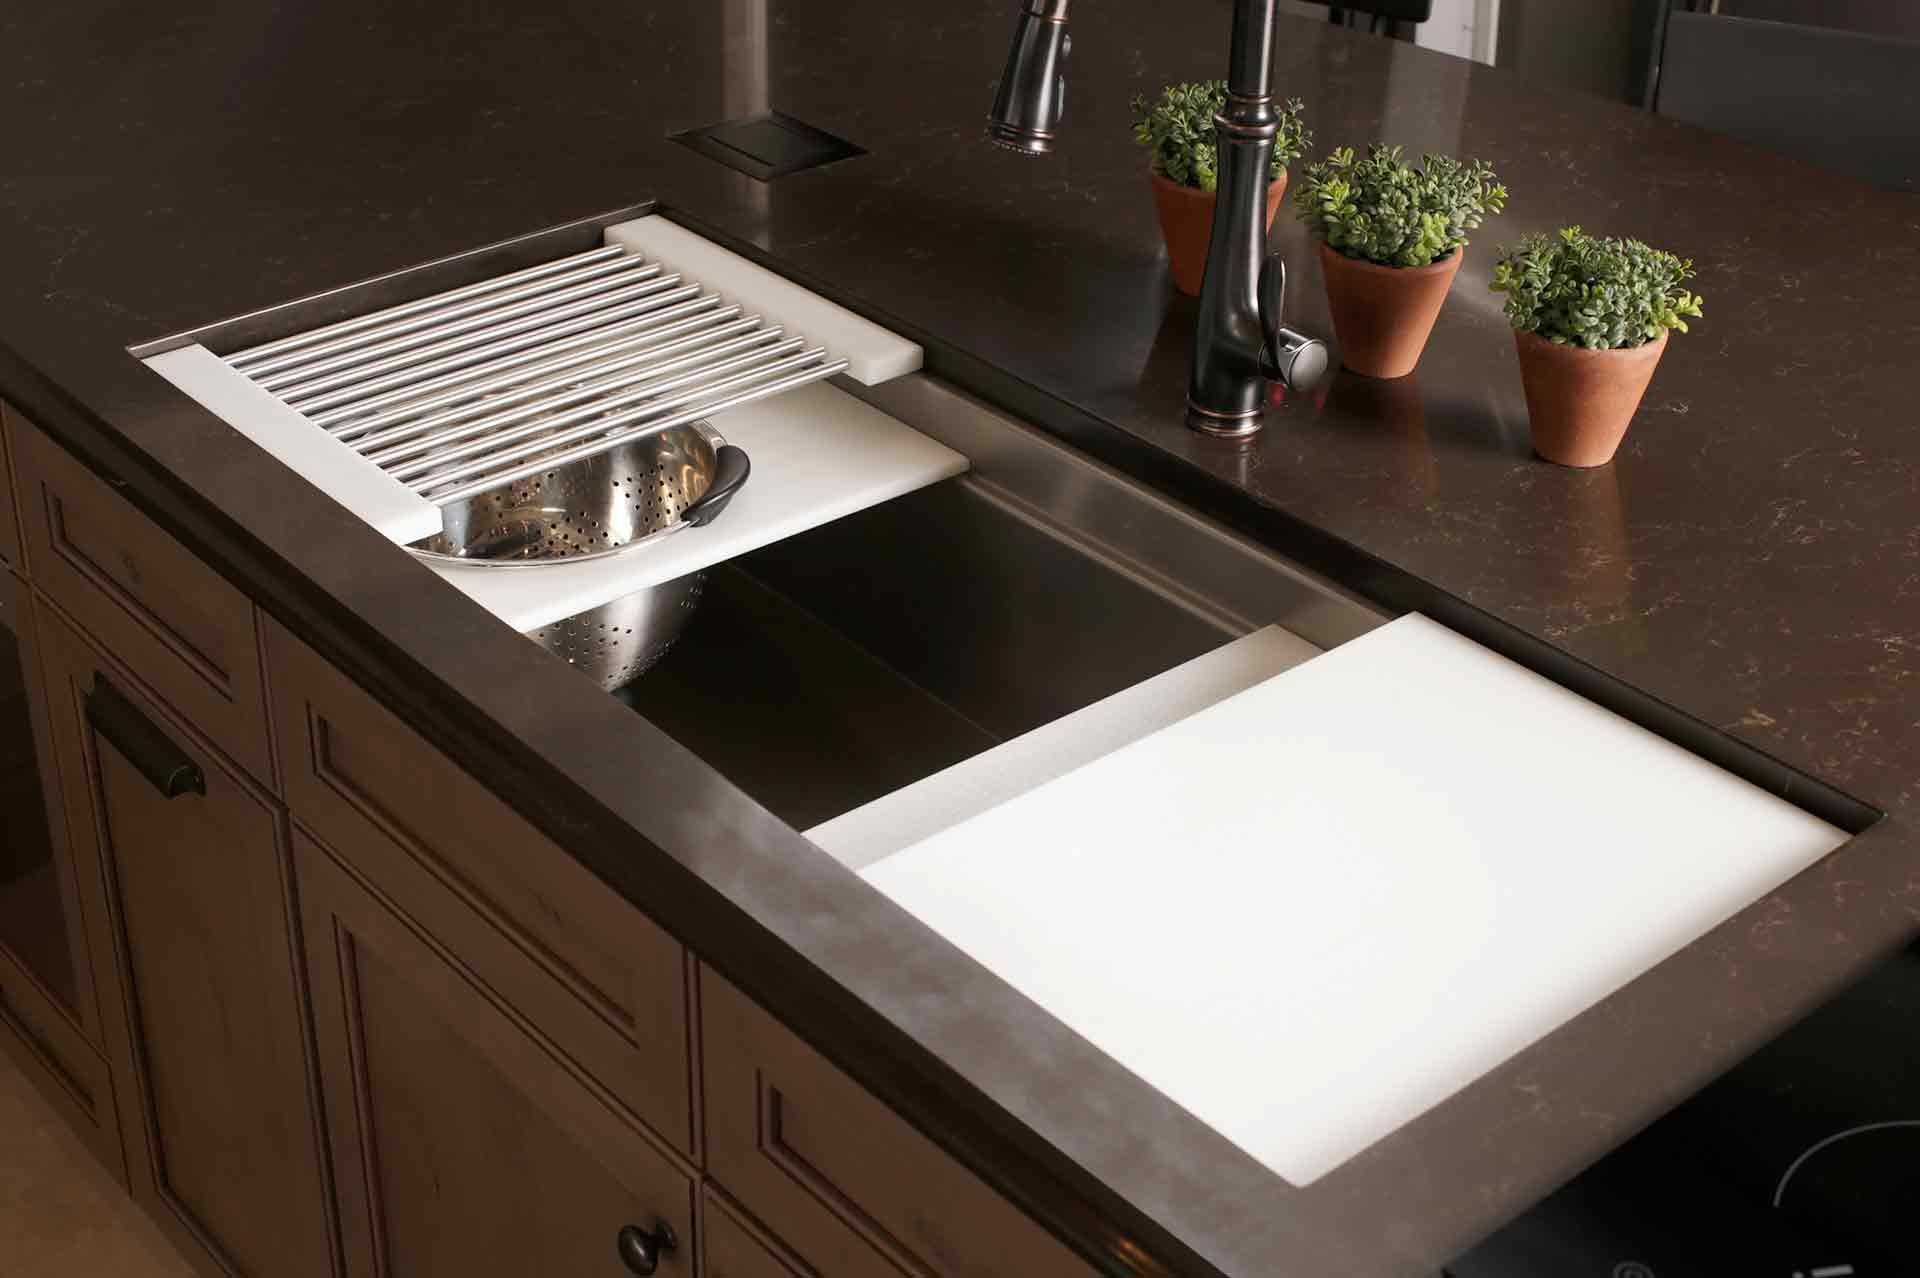 Iws 4 Stainless Steel Kitchen Sink White Resin Culinary Kit